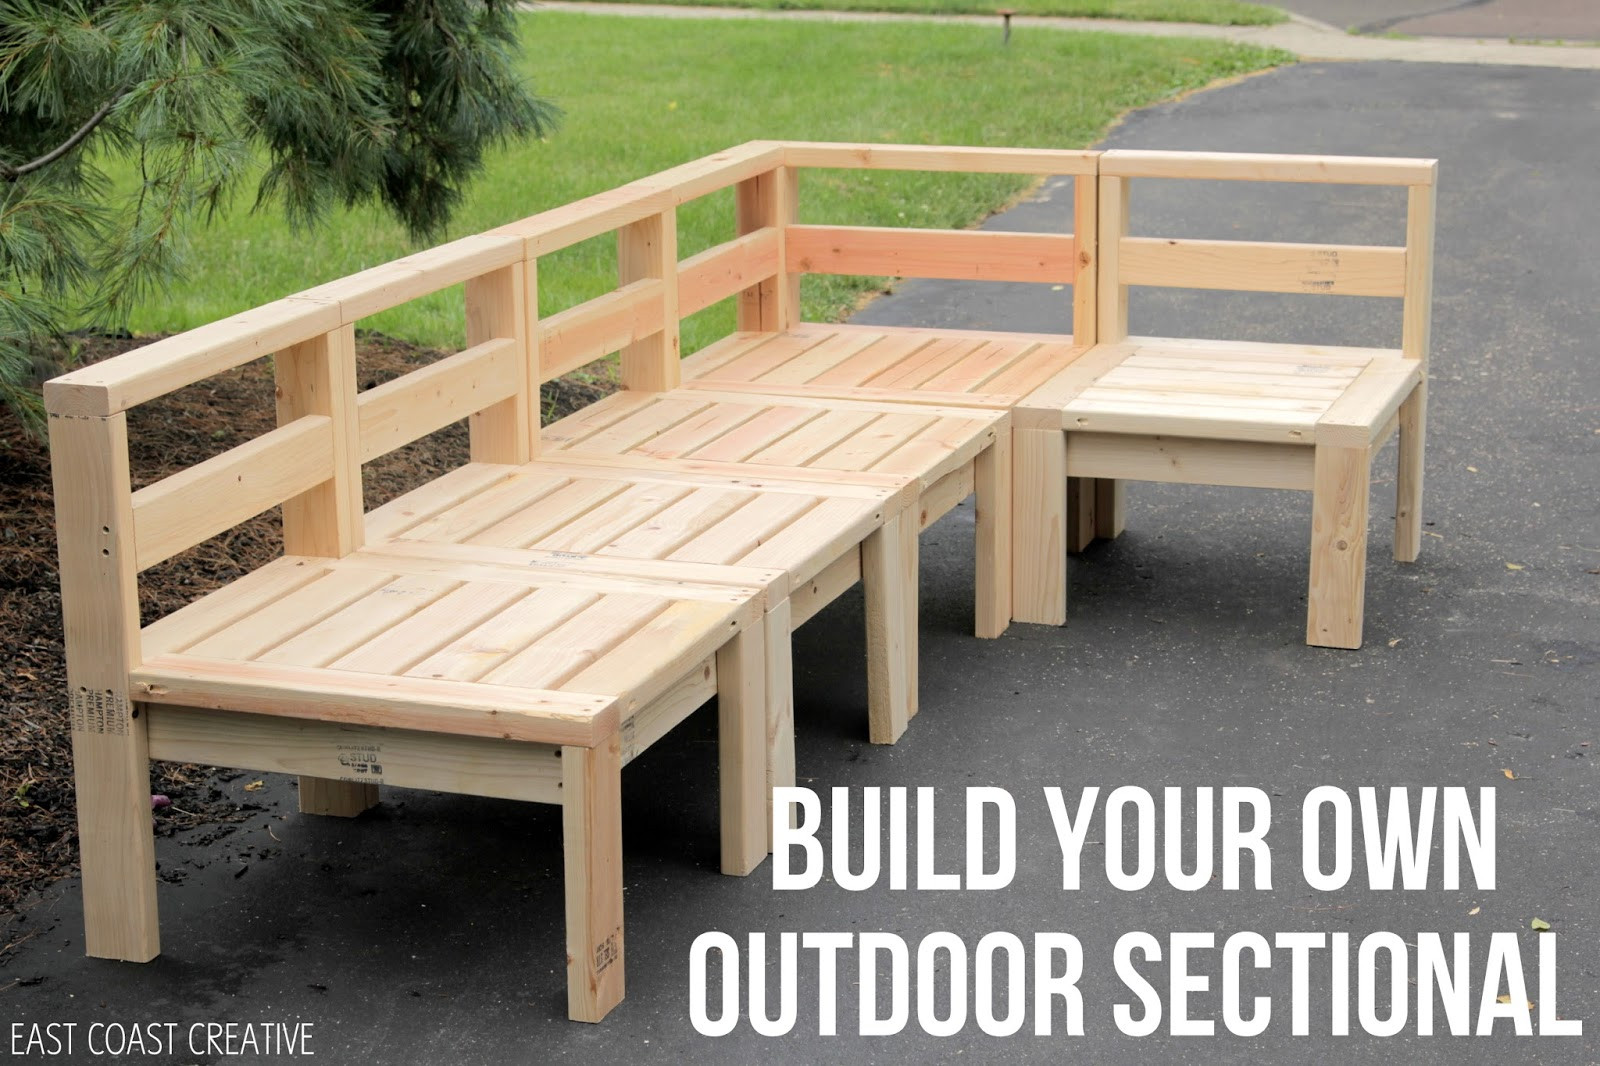 Best ideas about Outdoor Furniture DIY . Save or Pin How to Build an Outdoor Sectional Knock It f Now.